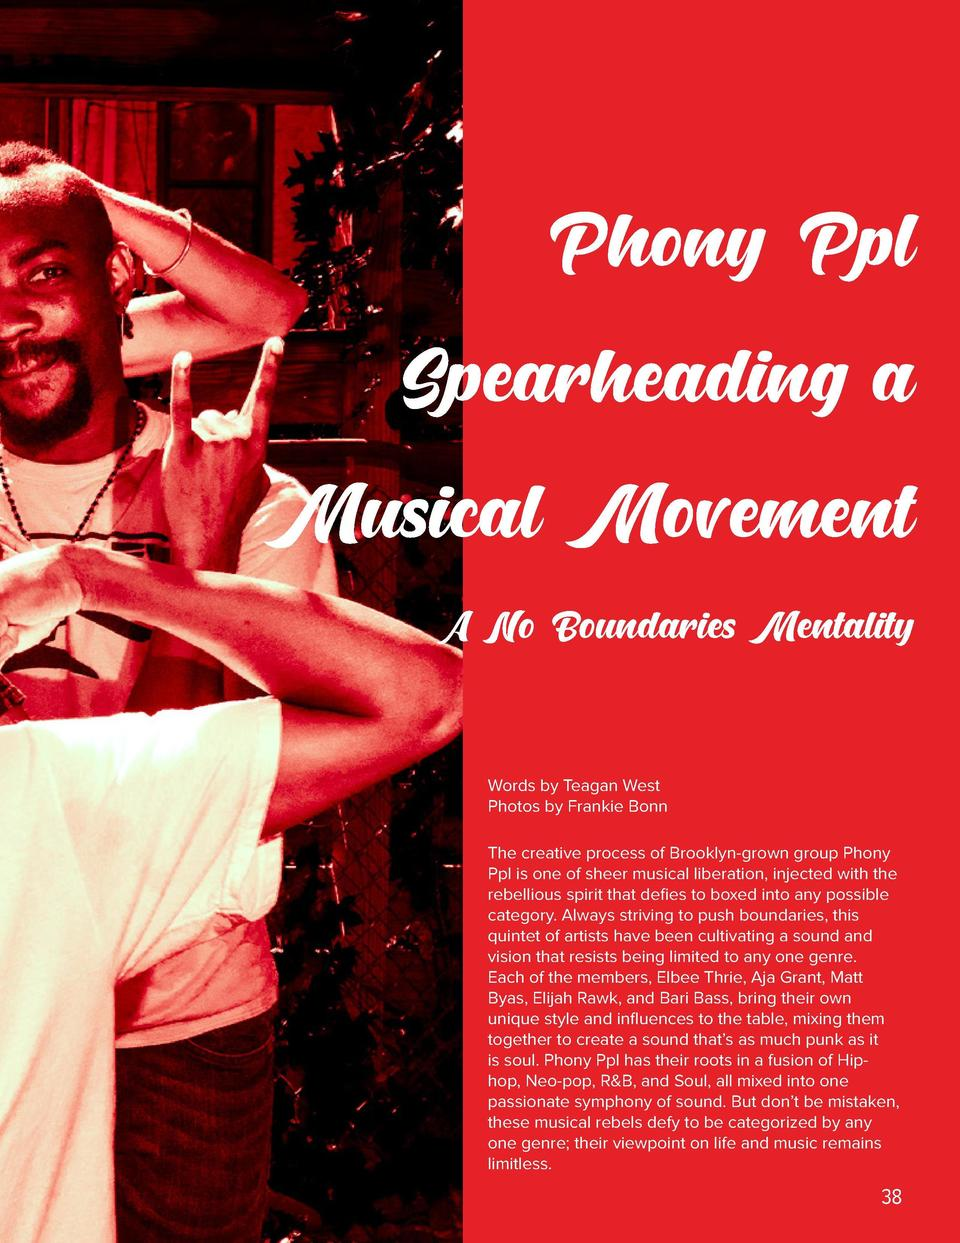 Phony Ppl Spearheading a Musical Movement A No Boundaries Mentality Words by Teagan West Photos by Frankie Bonn The creati...